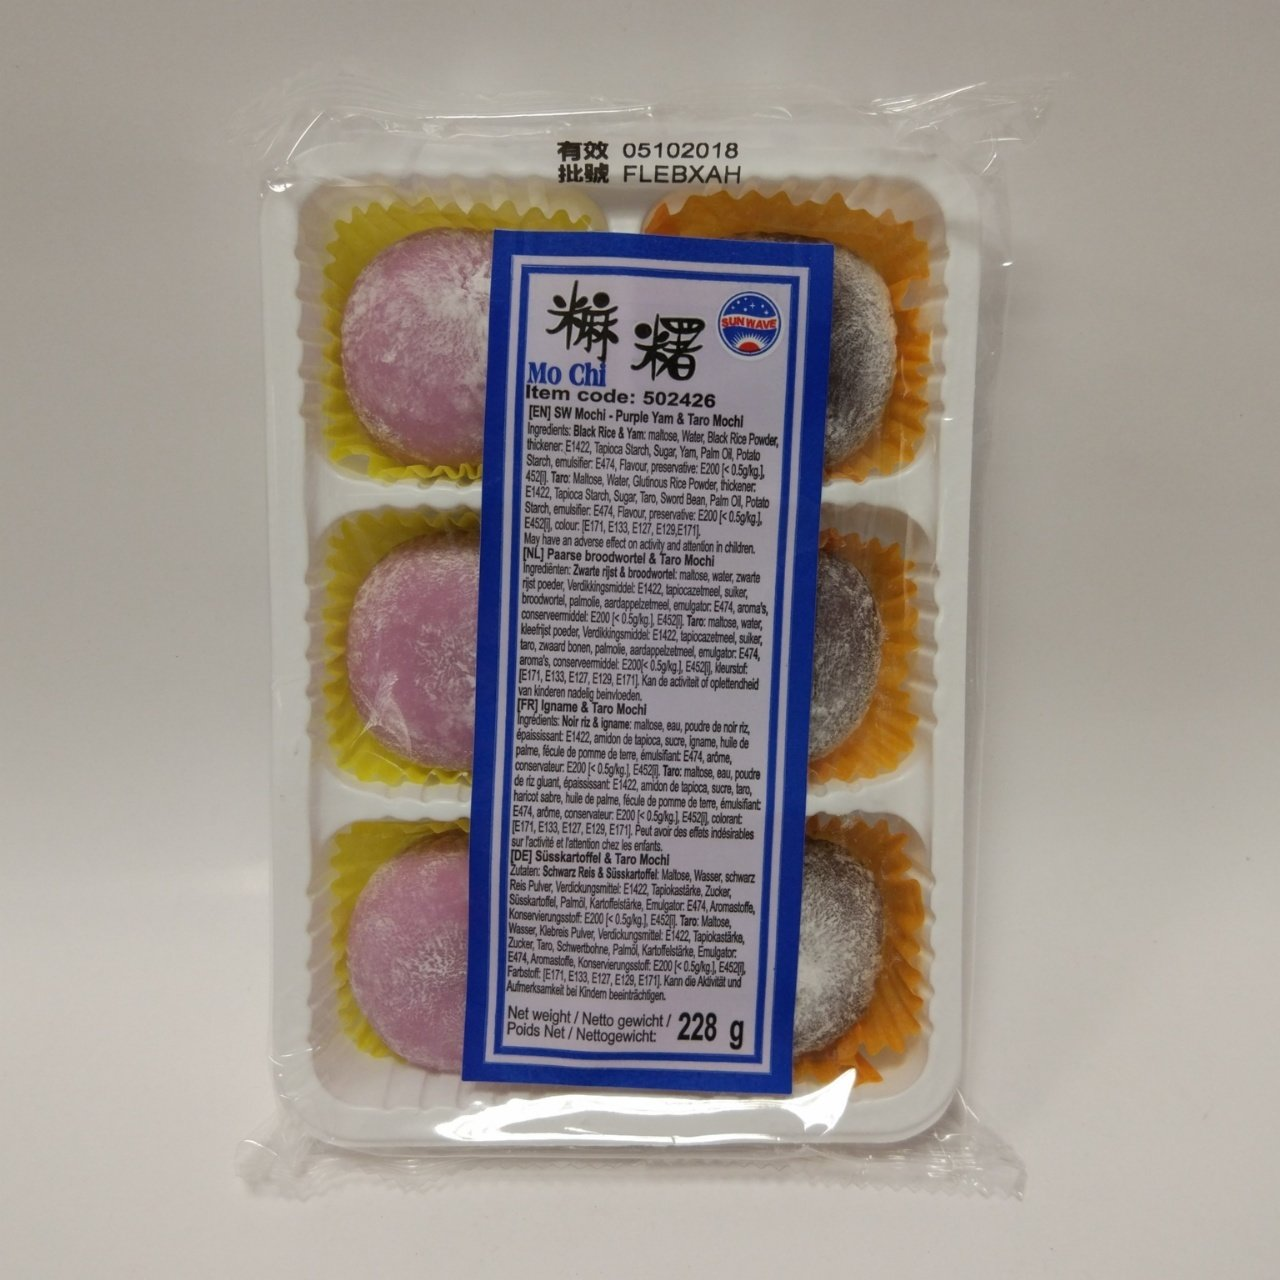 Sun Wave Mochi - Purple Yam & Taro 230g